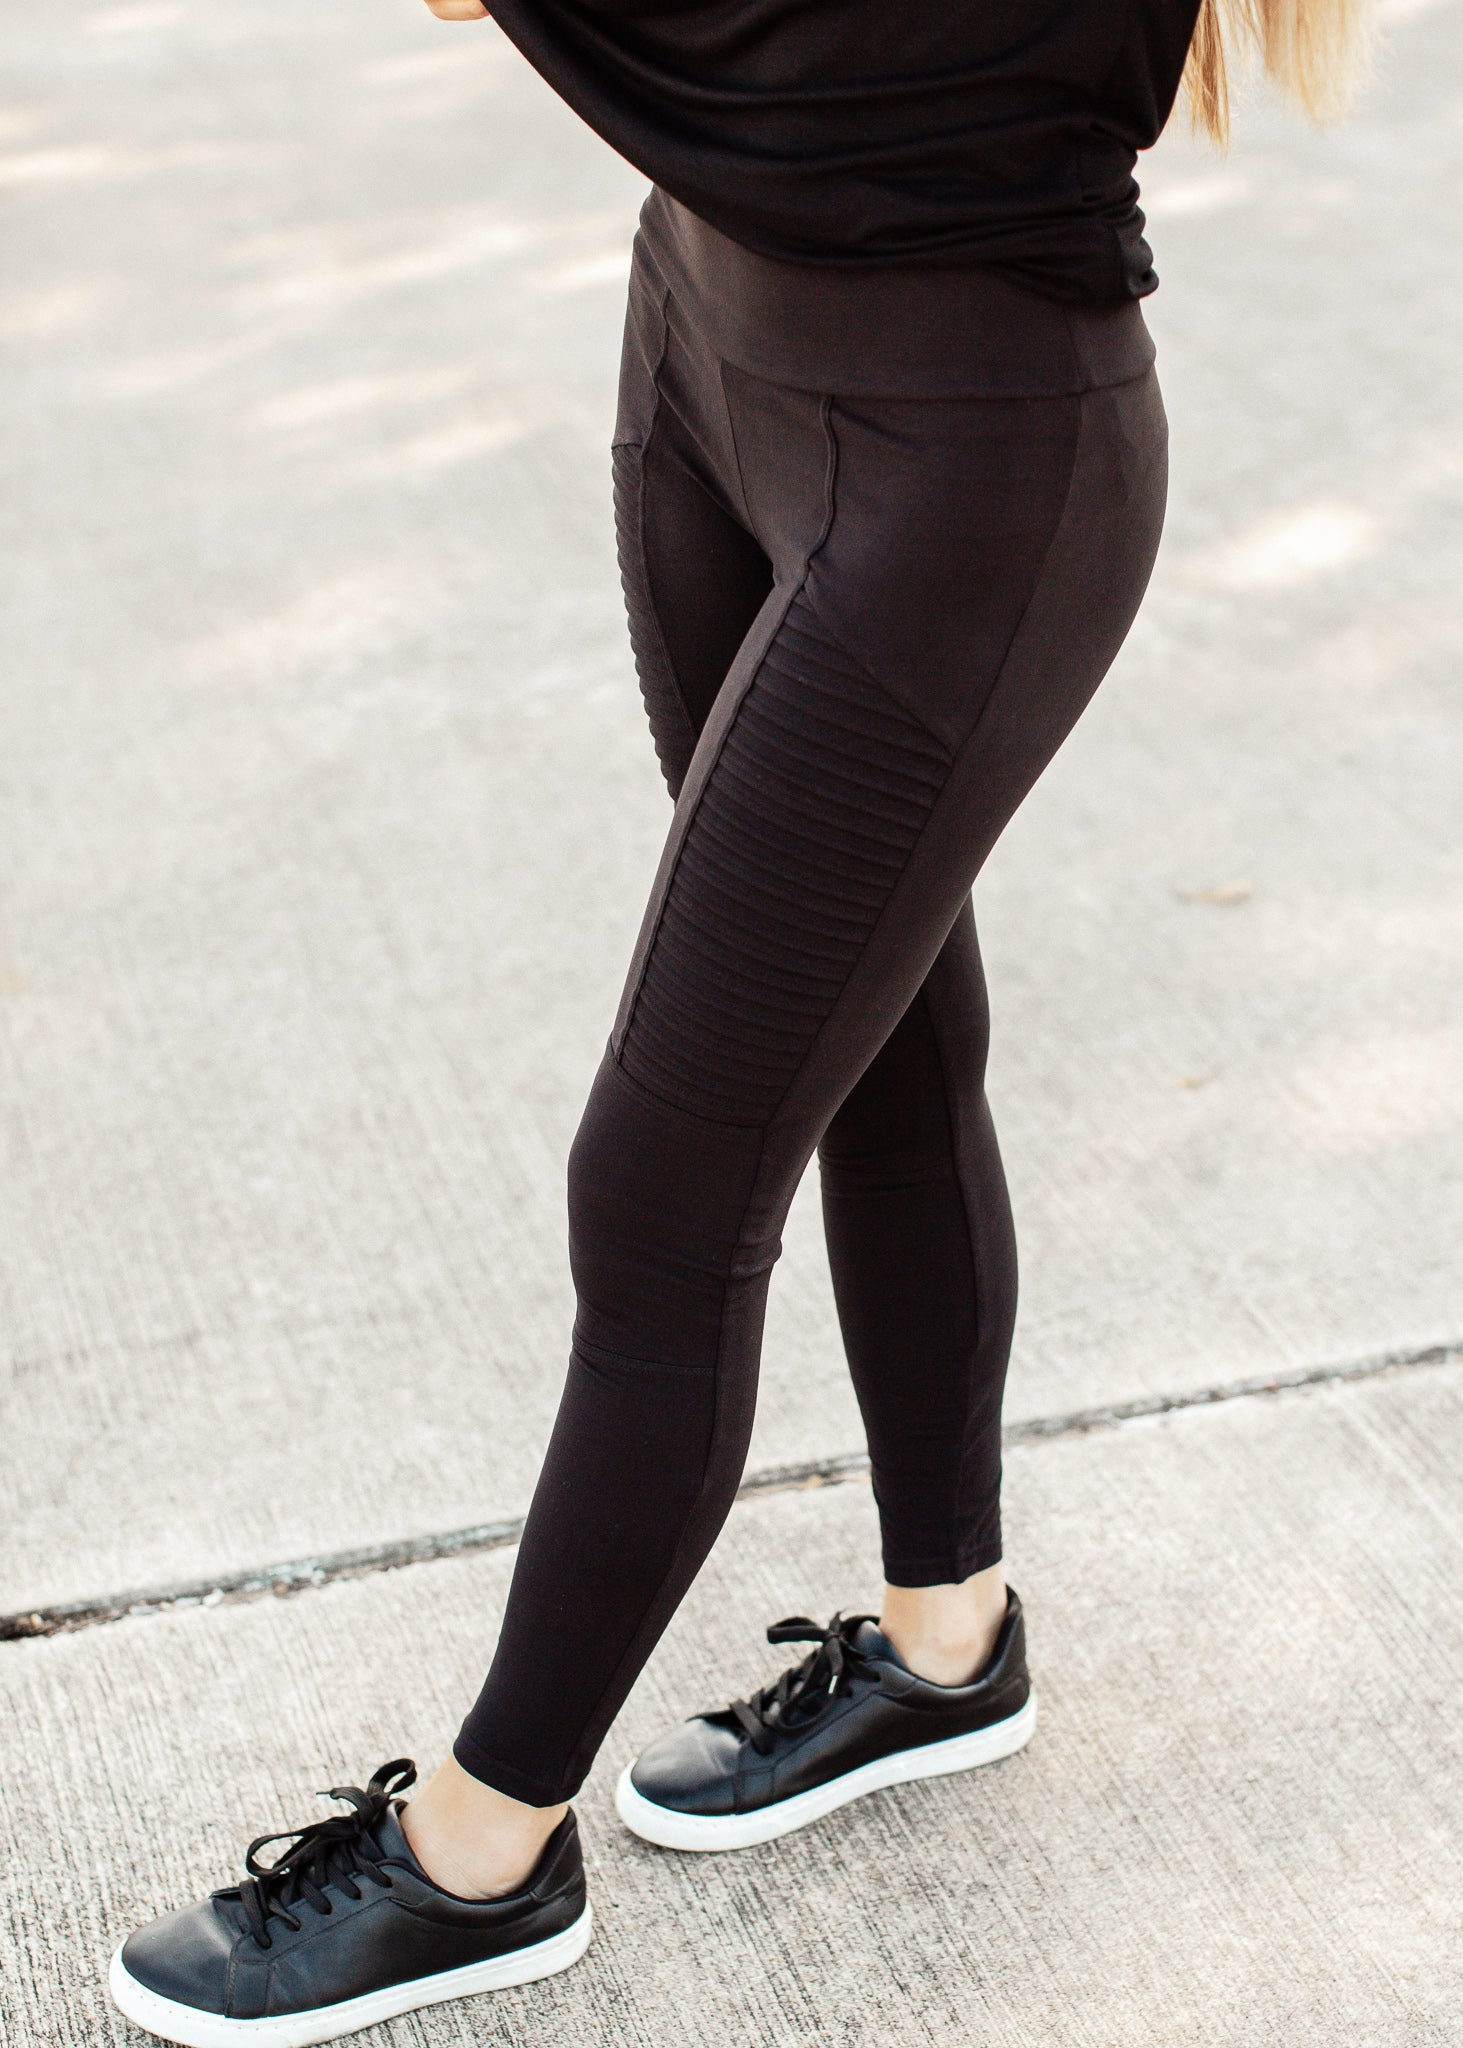 Motto Leggings (S-3X) *BLACK